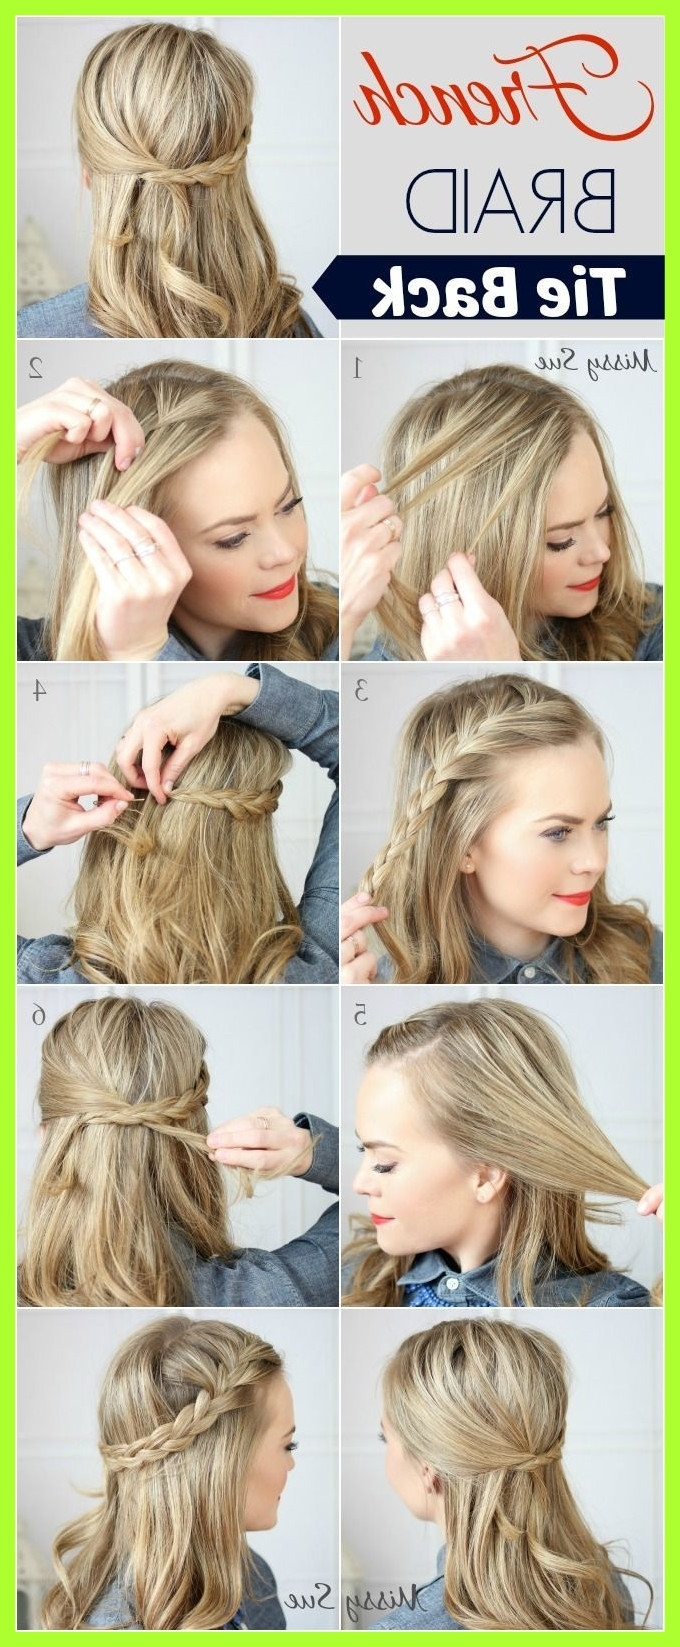 Shocking Curly Prom Hairstyle For Long Medium Hair Wedding Best Pic Throughout Famous Diy Wedding Updos For Long Hair (View 8 of 15)